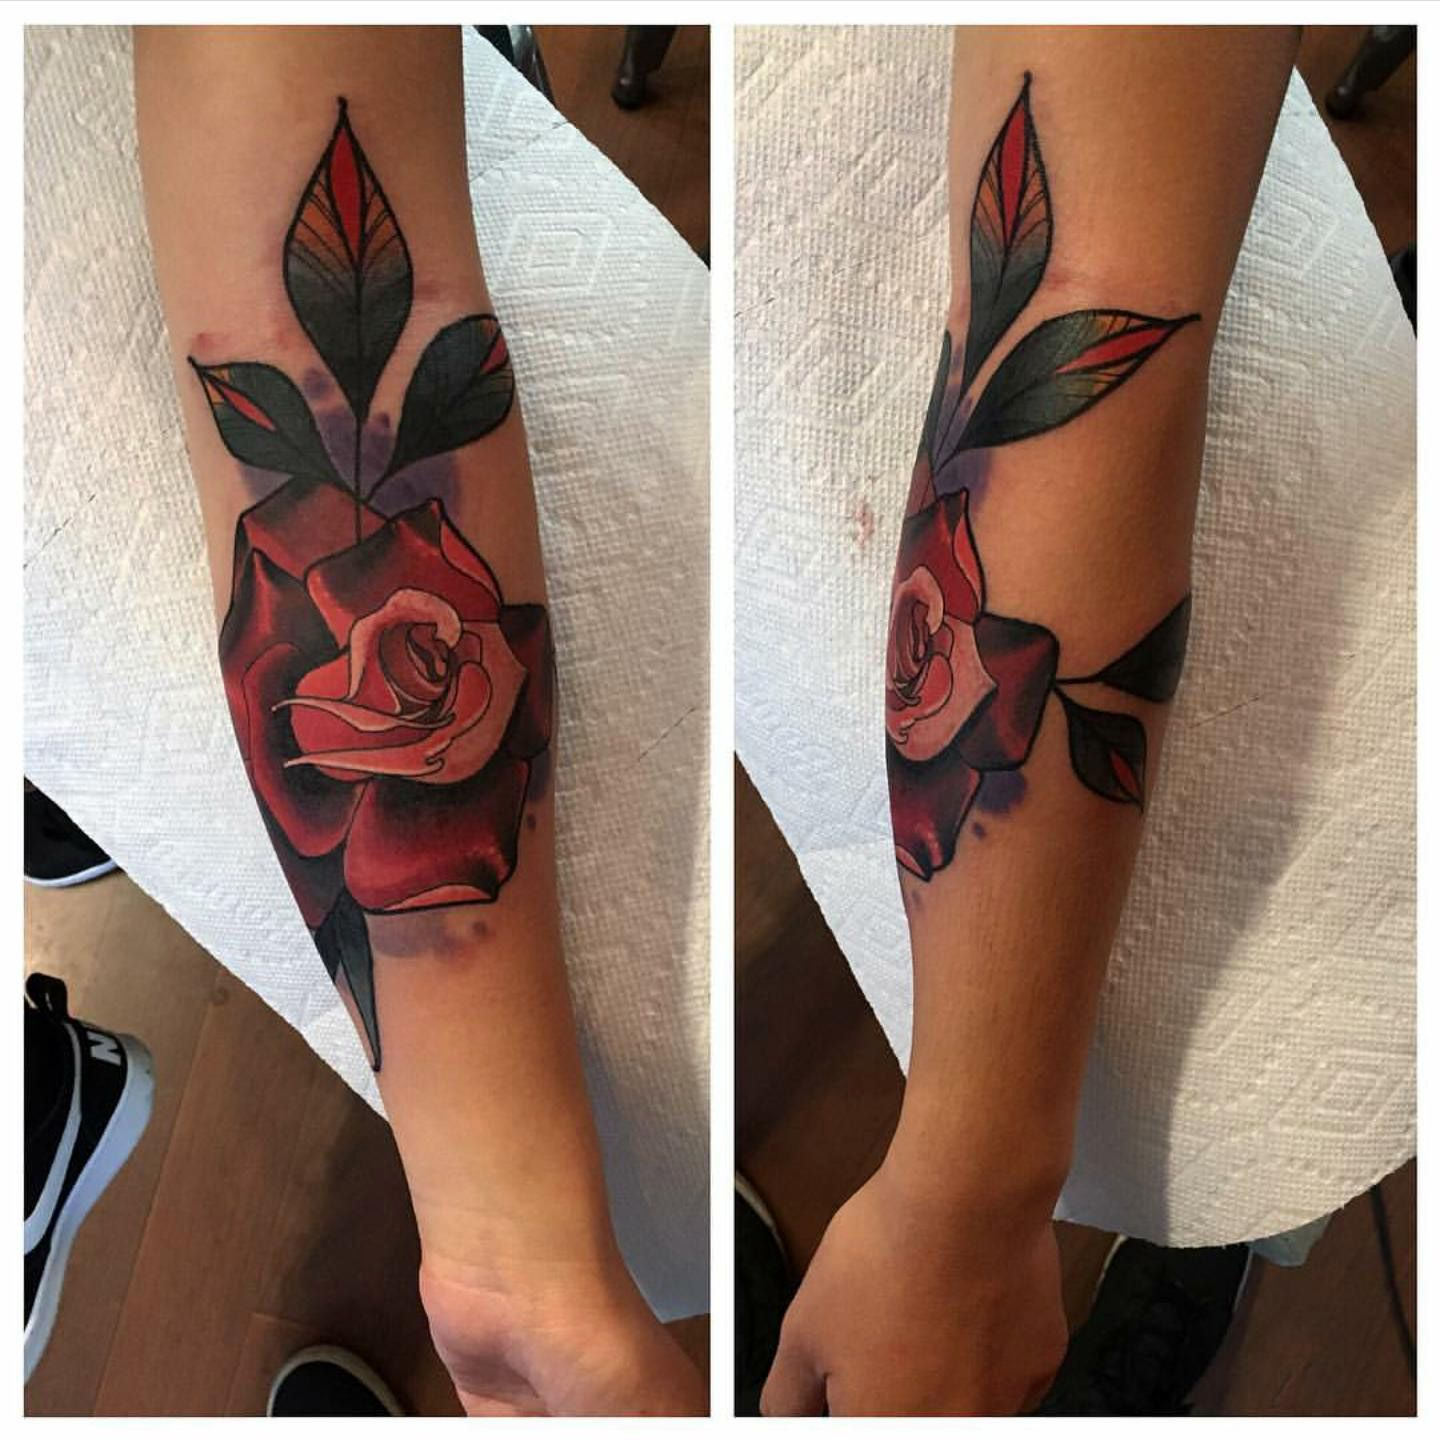 Rose Tattoo By Grant Lubbock At Red Baron Ink East Village Ny Tattoos Rose Tattoo Rose Tattoos